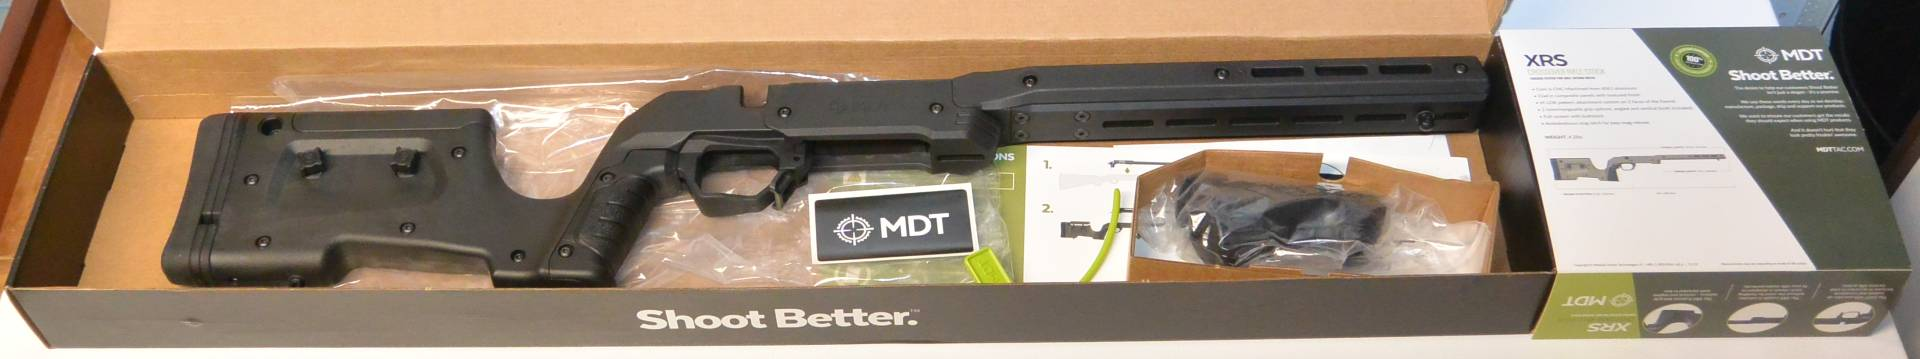 The MDT XRS unboxing pic. Very much a ready for retail shelves package